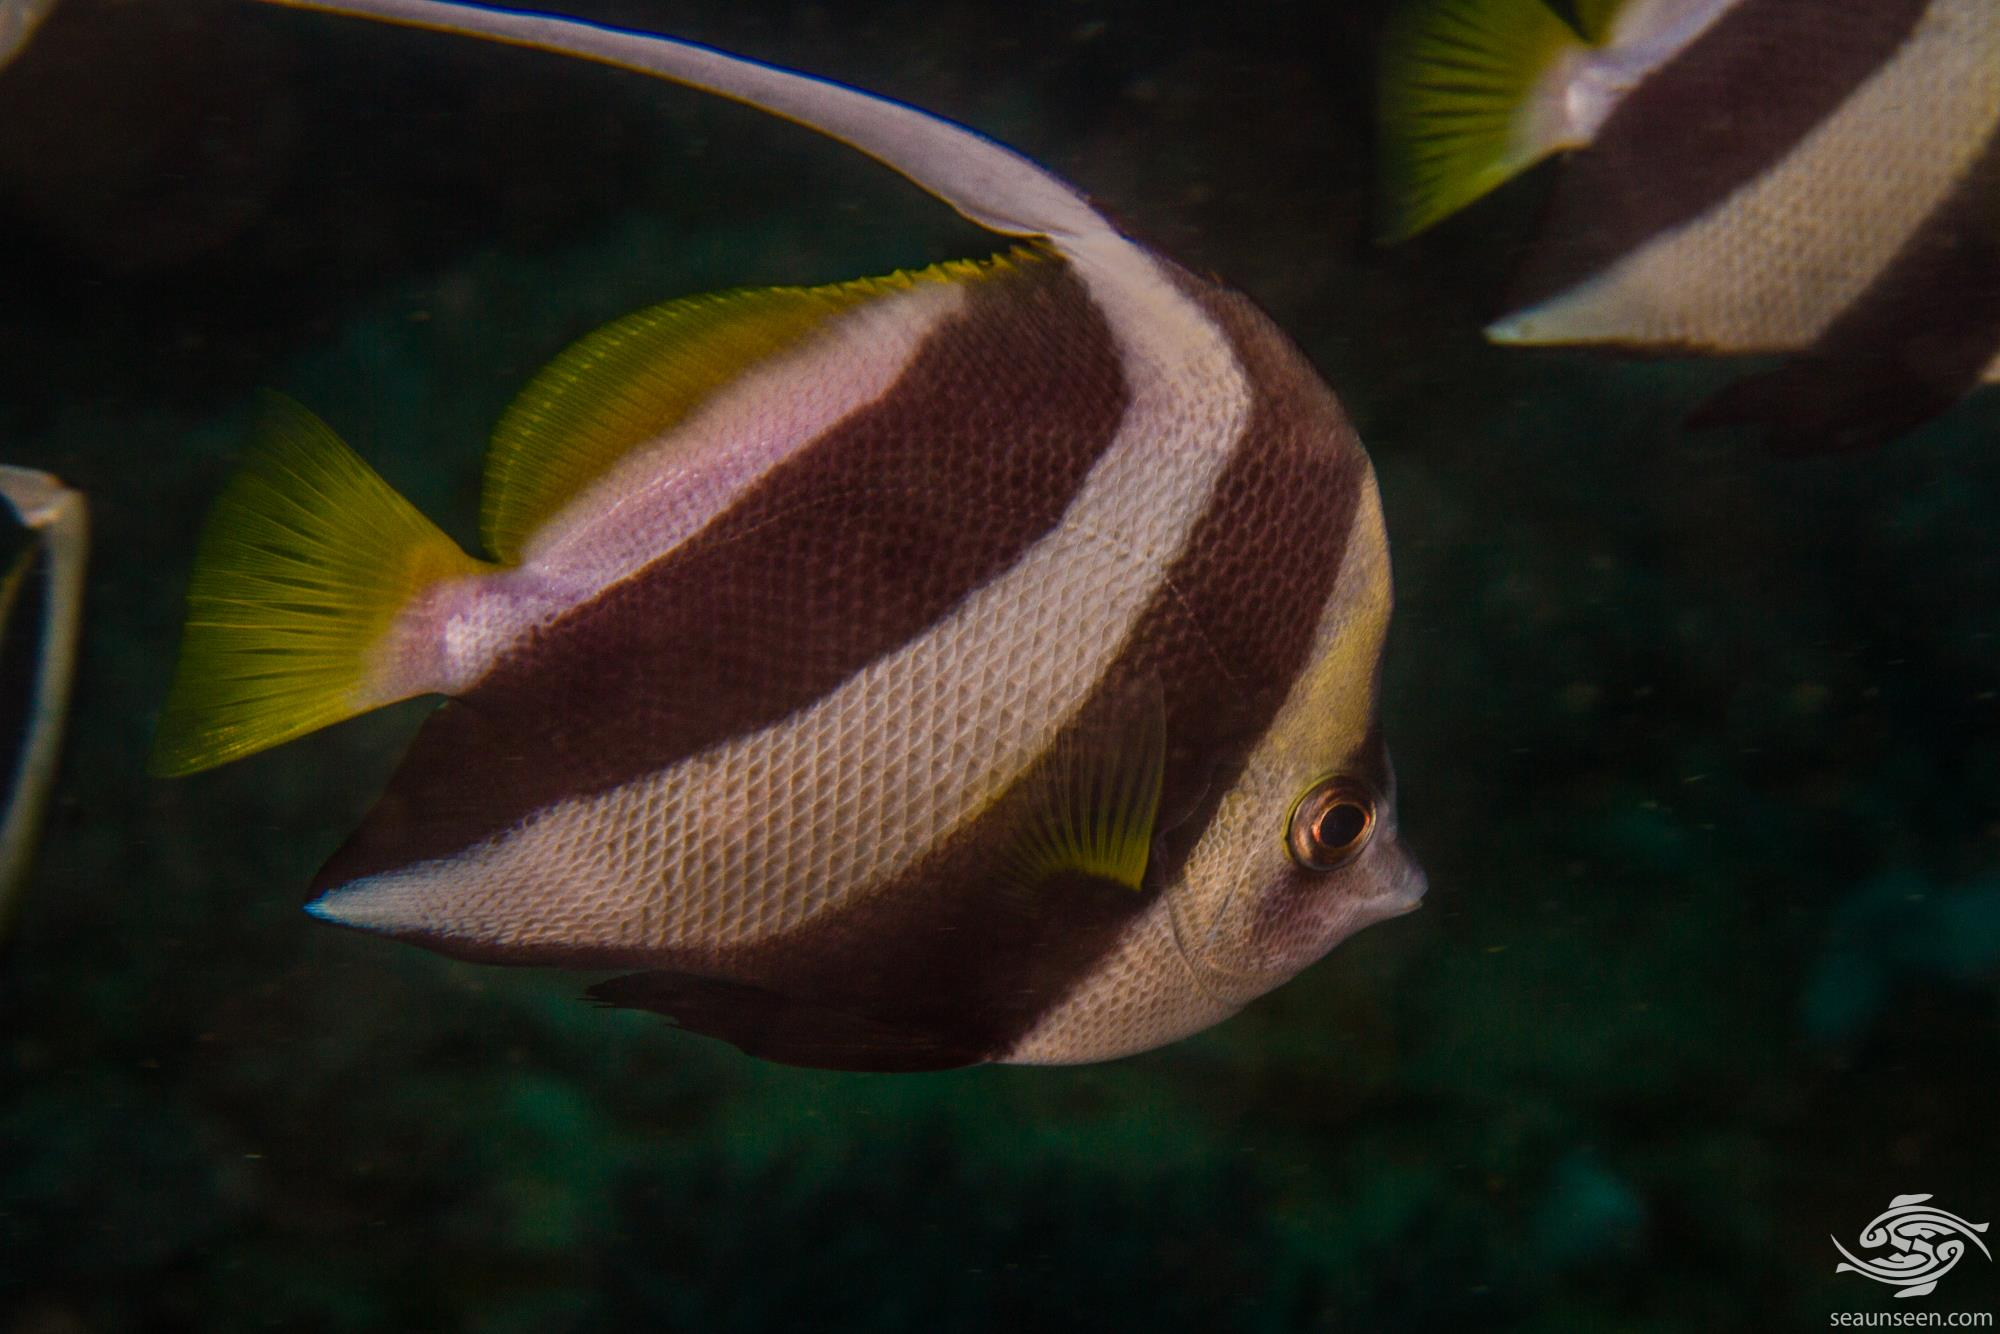 Schooling Bannerfish (Heniochus diphreutes) , is also known as the coachman or pennant bannerfish